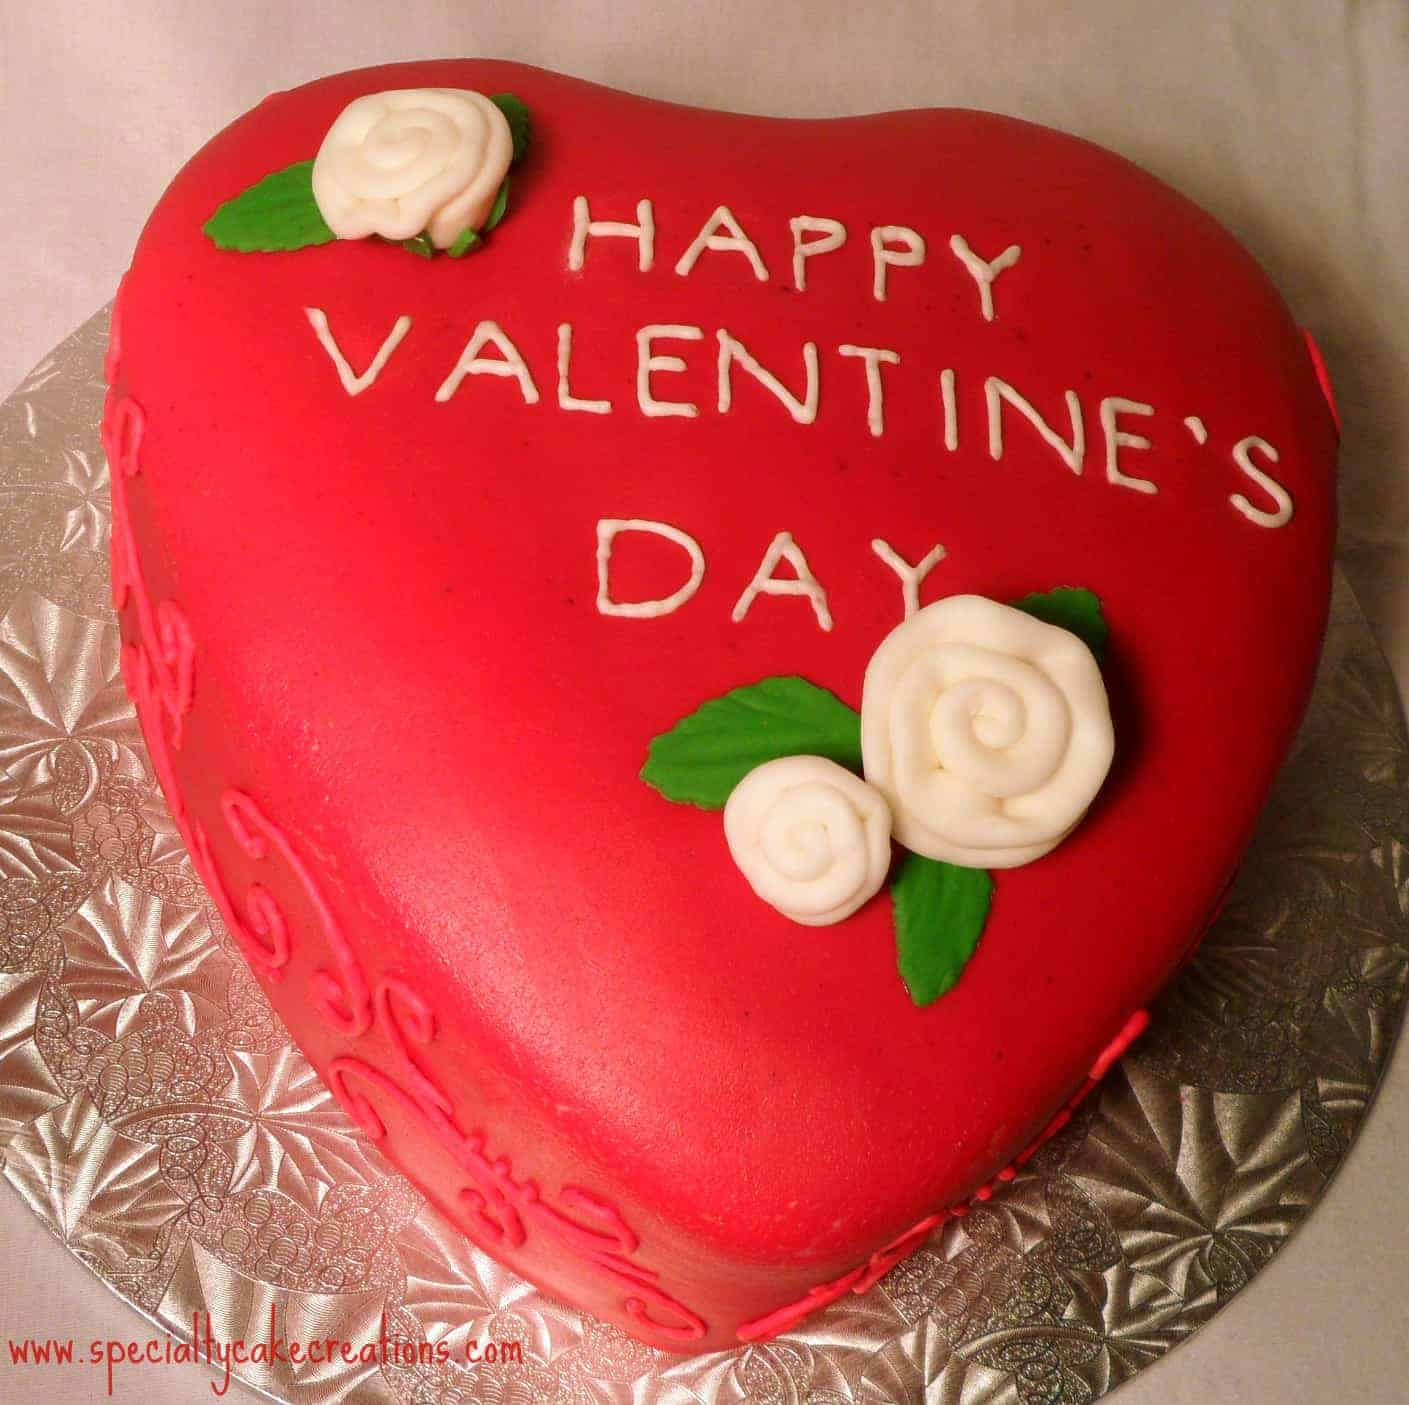 Valentines Cake Happy Valentine's Day:...